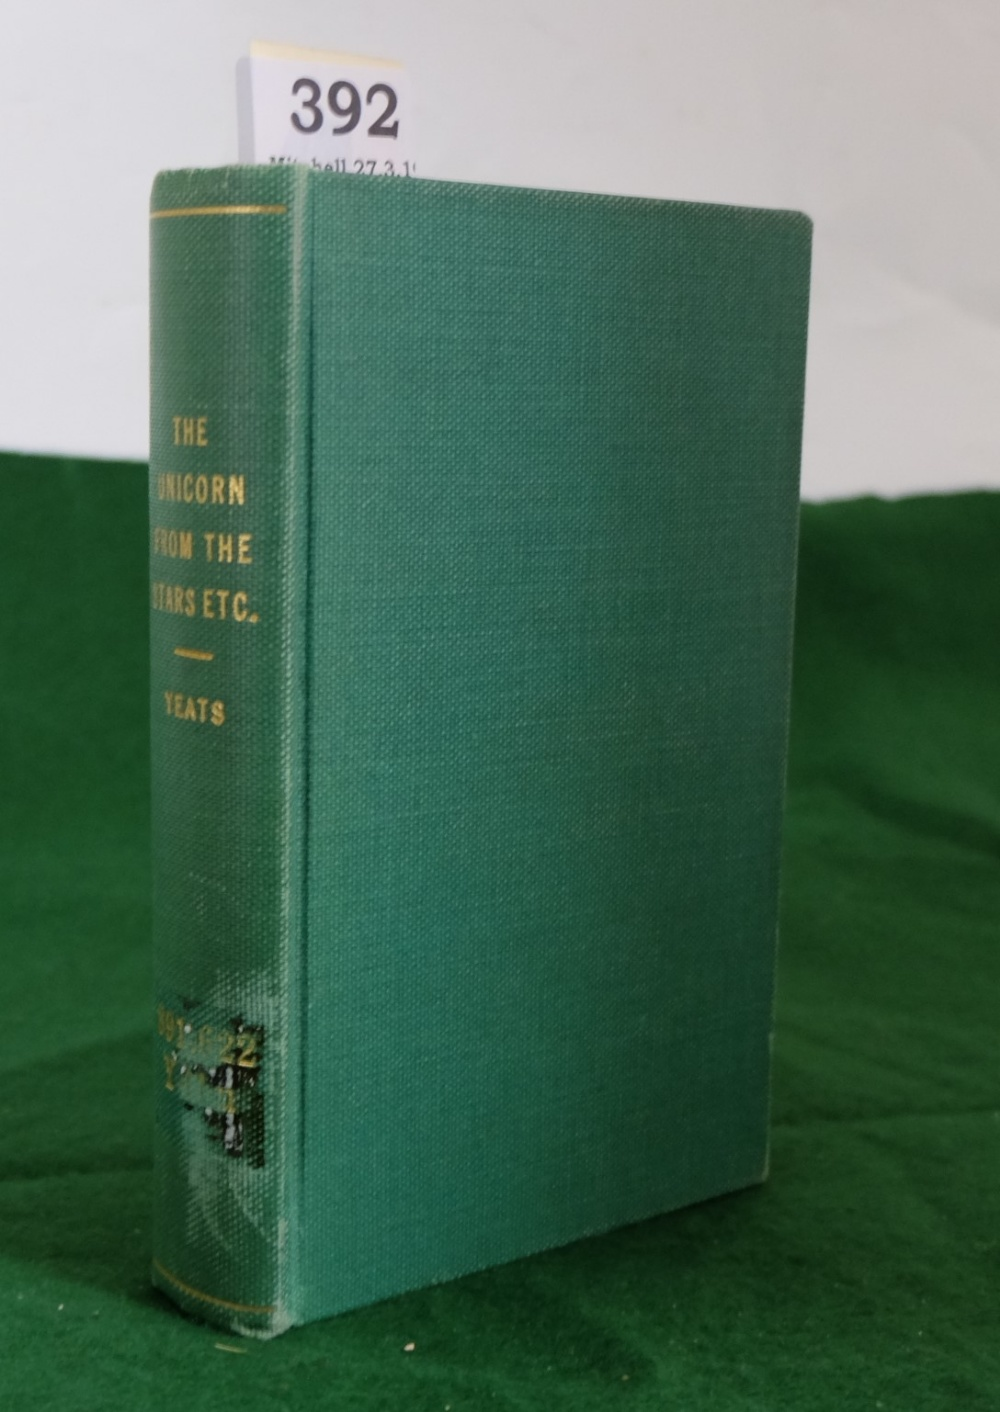 Lot 392 - BOOK - WB Yeats and Lady Gregory, The Unicorn from the Stars and other plays, 1908, First U.S.